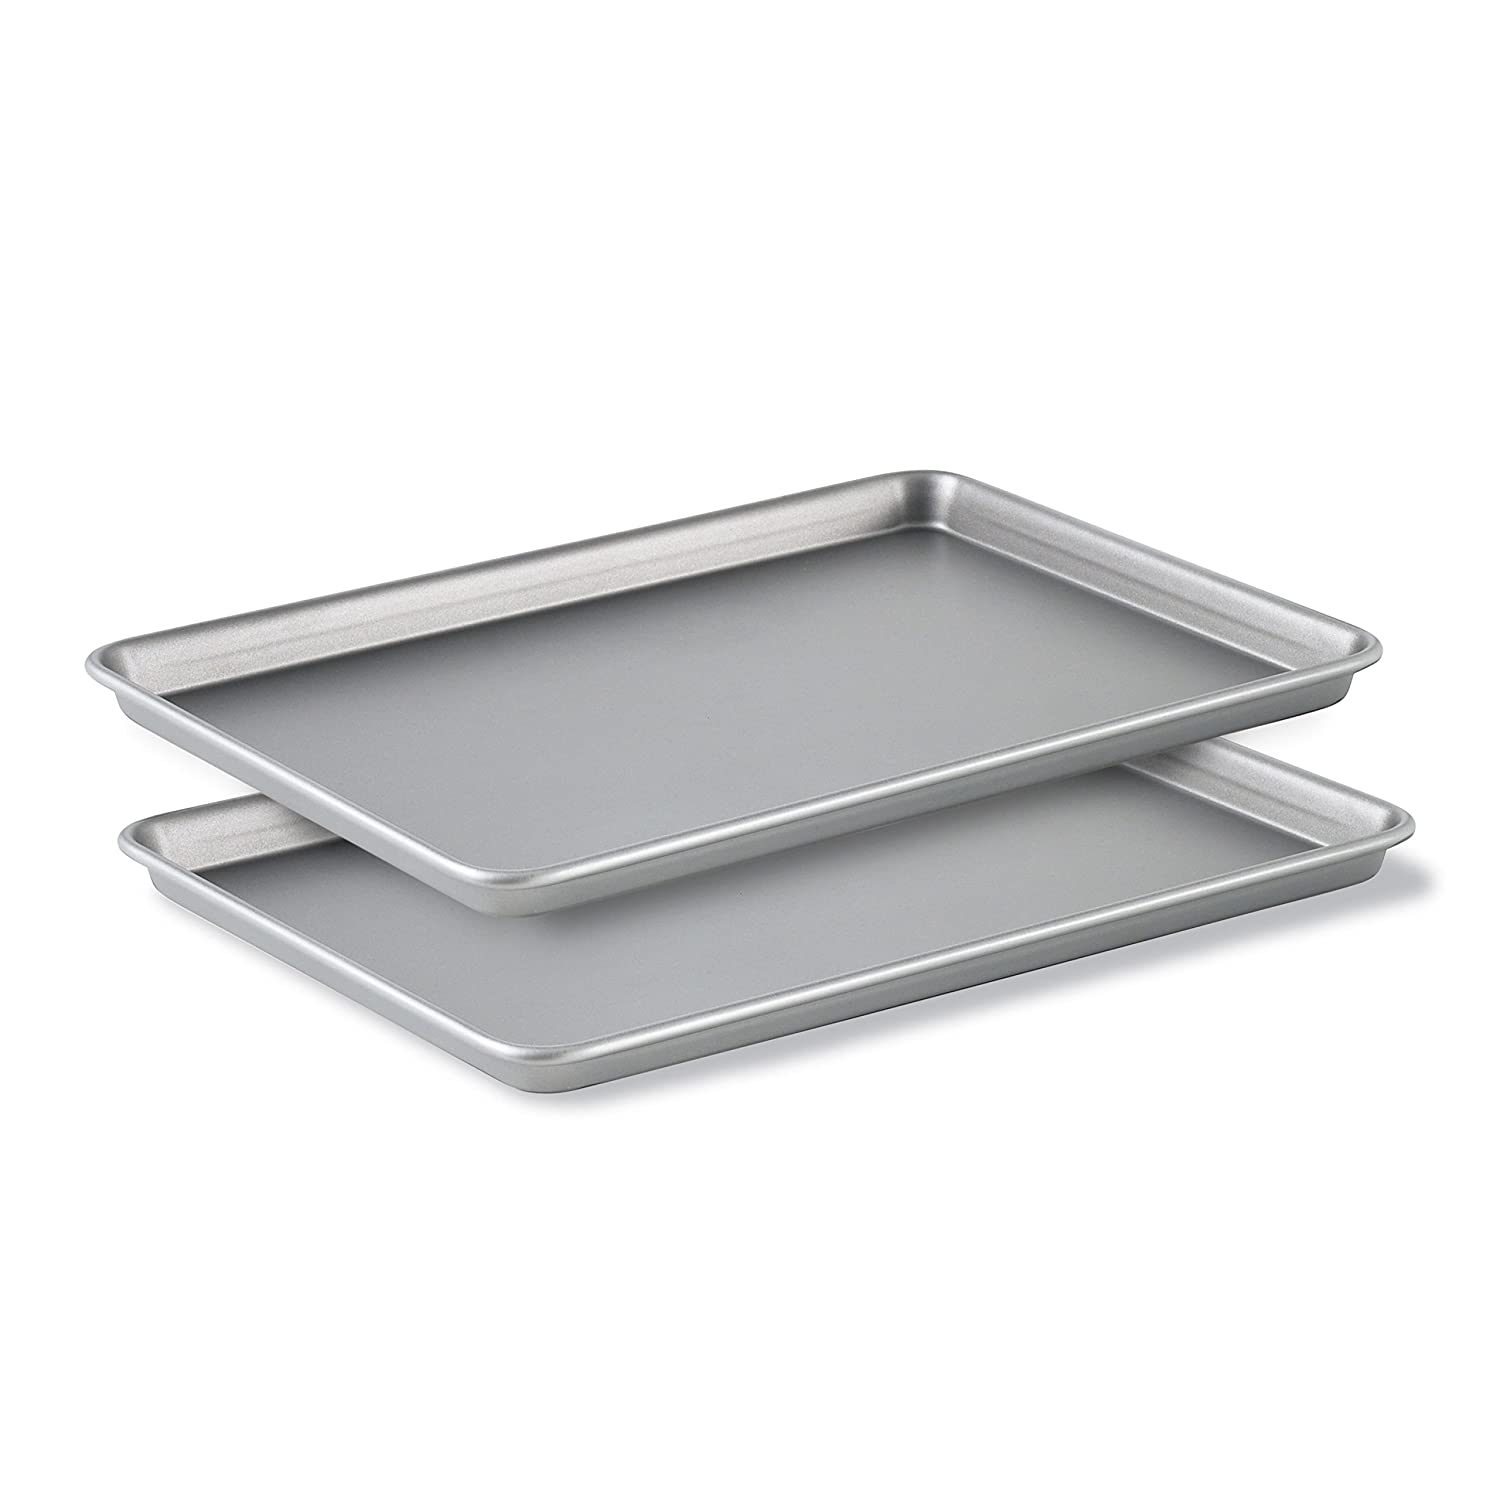 Calphalon Nonstick Bakeware, Baking Sheet, 2-Piece Set